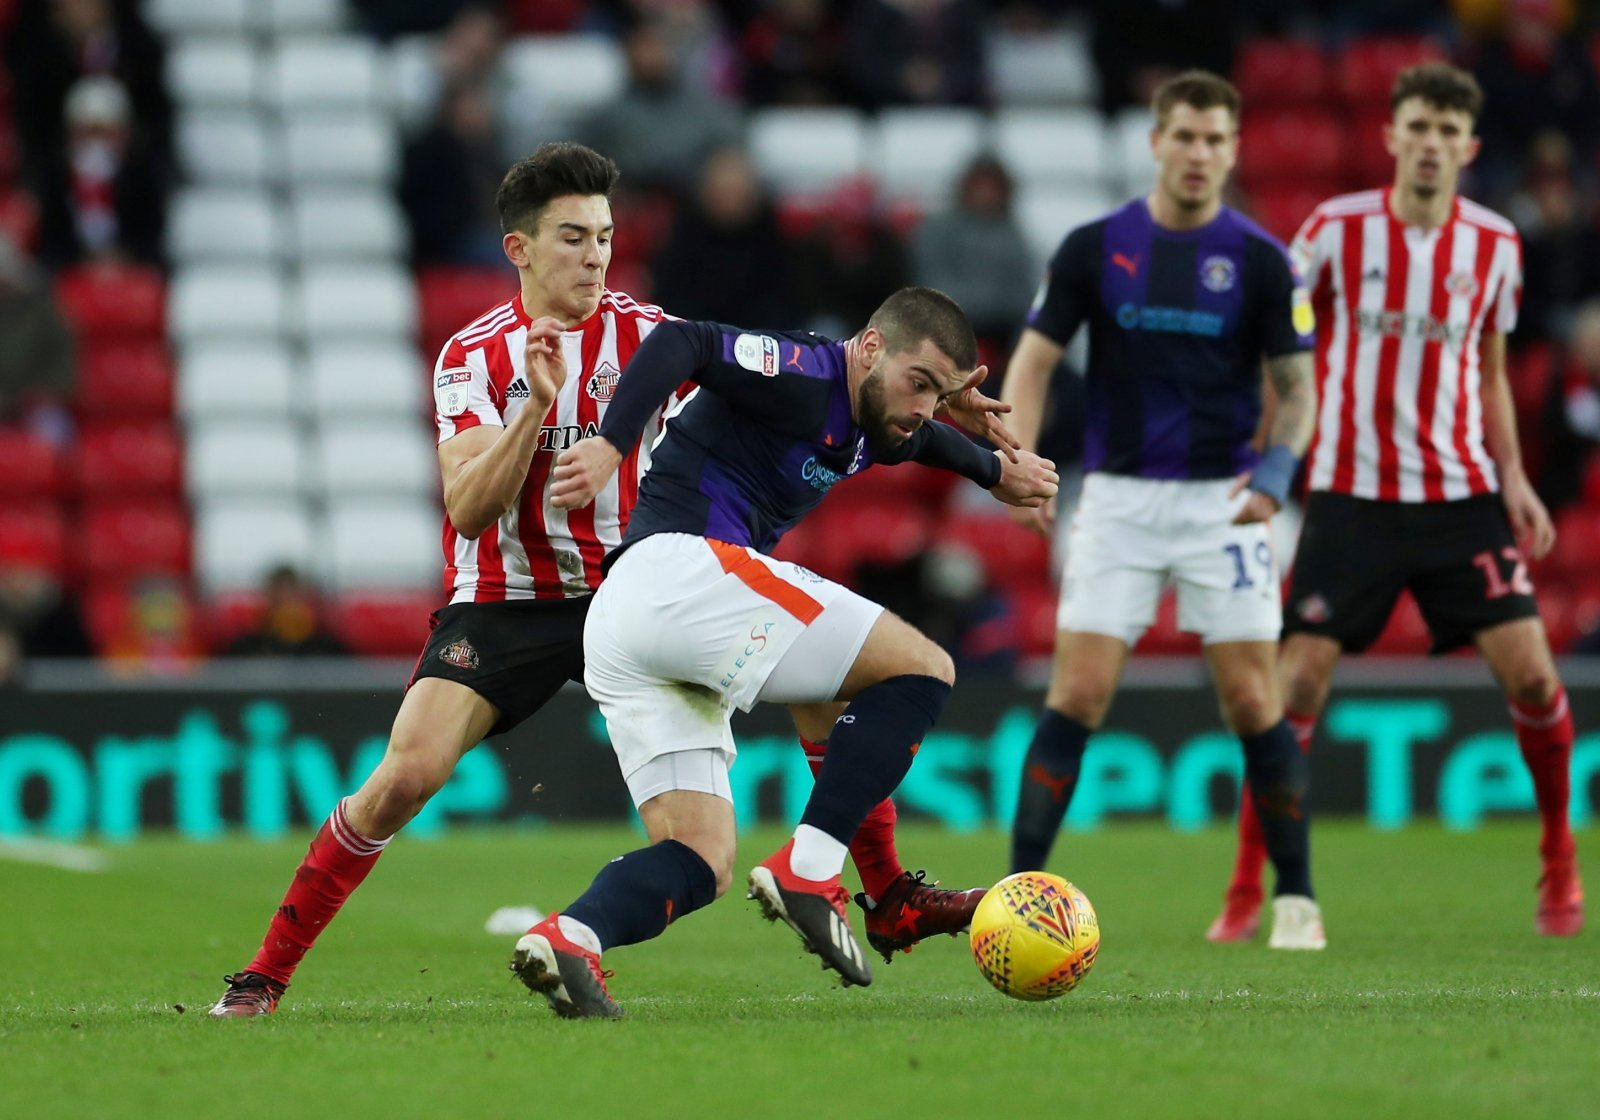 Sunderland: Appeal against Luke O'Nien's red card has been successful